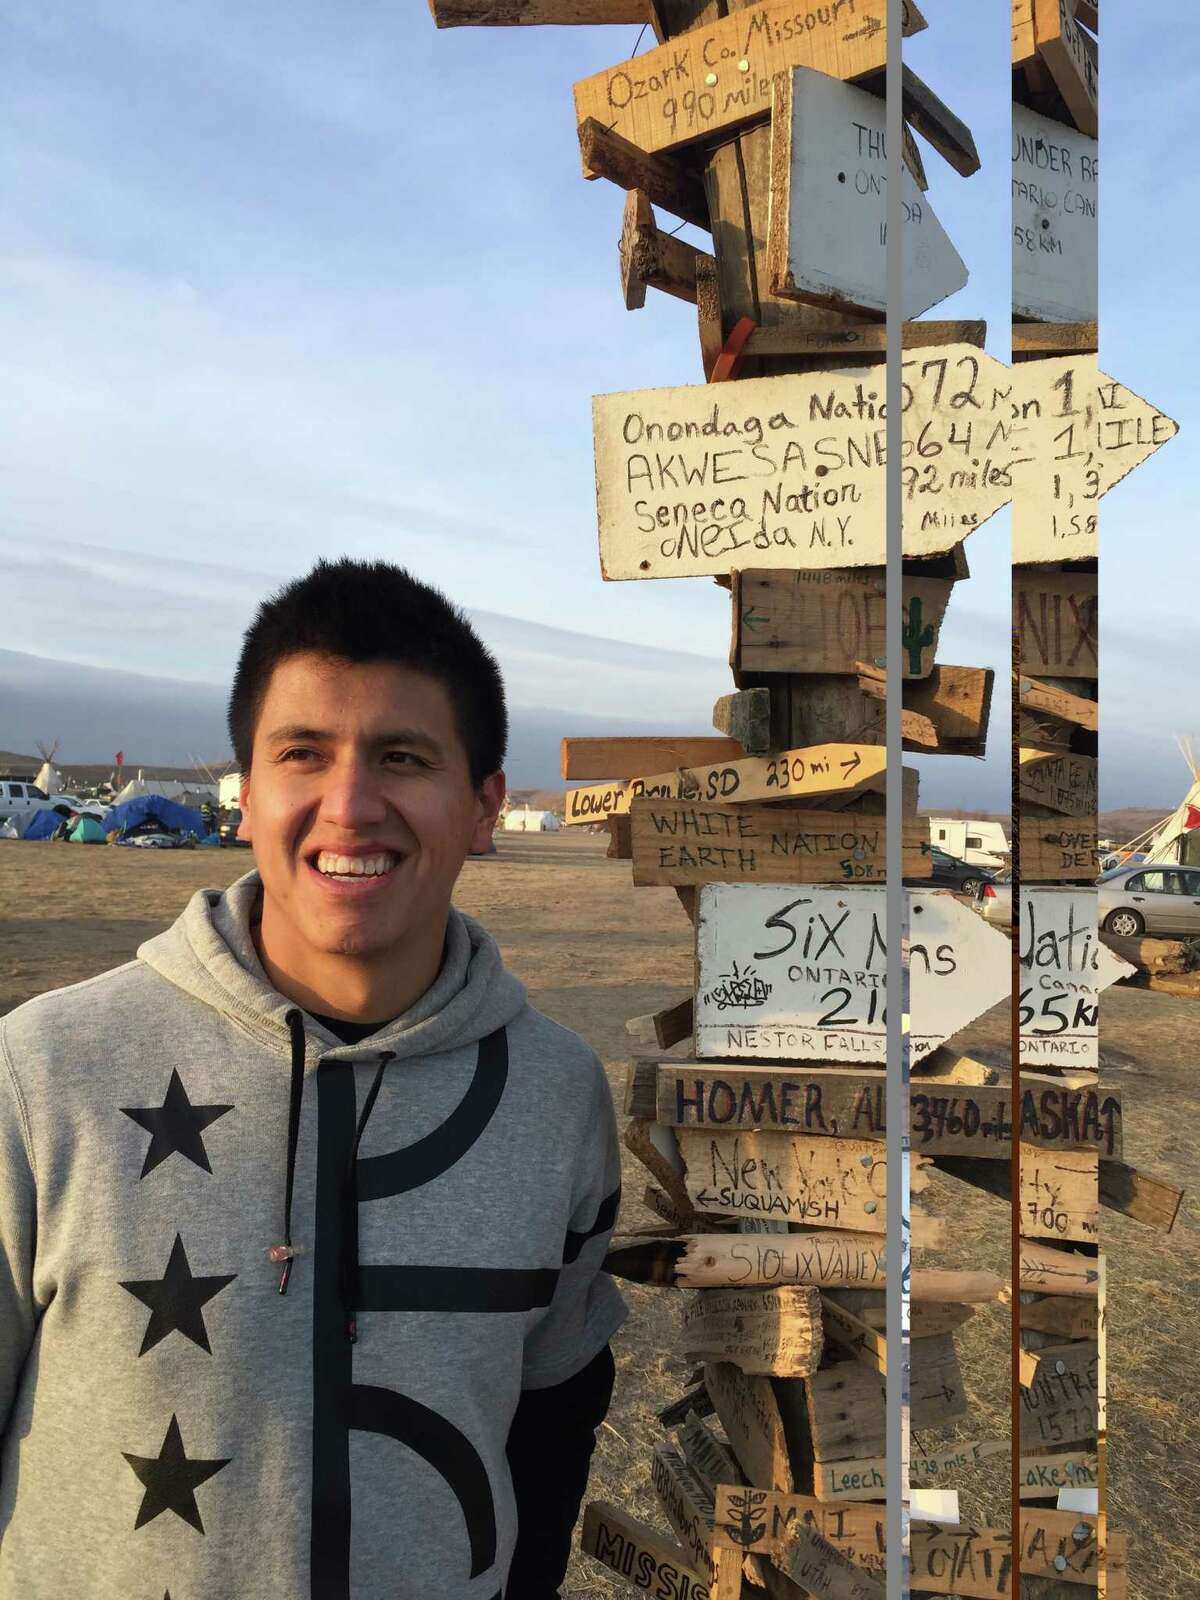 Former UAlbany lacrosse player Lyle Thompson stands in front of a sign showing directions to Native American reservations, including his own, Six Nations in Canada, at the Standing Rock Sioux pipeline protest in Cannon Ball, N.D. (Photo courtesy of Scott Marr)